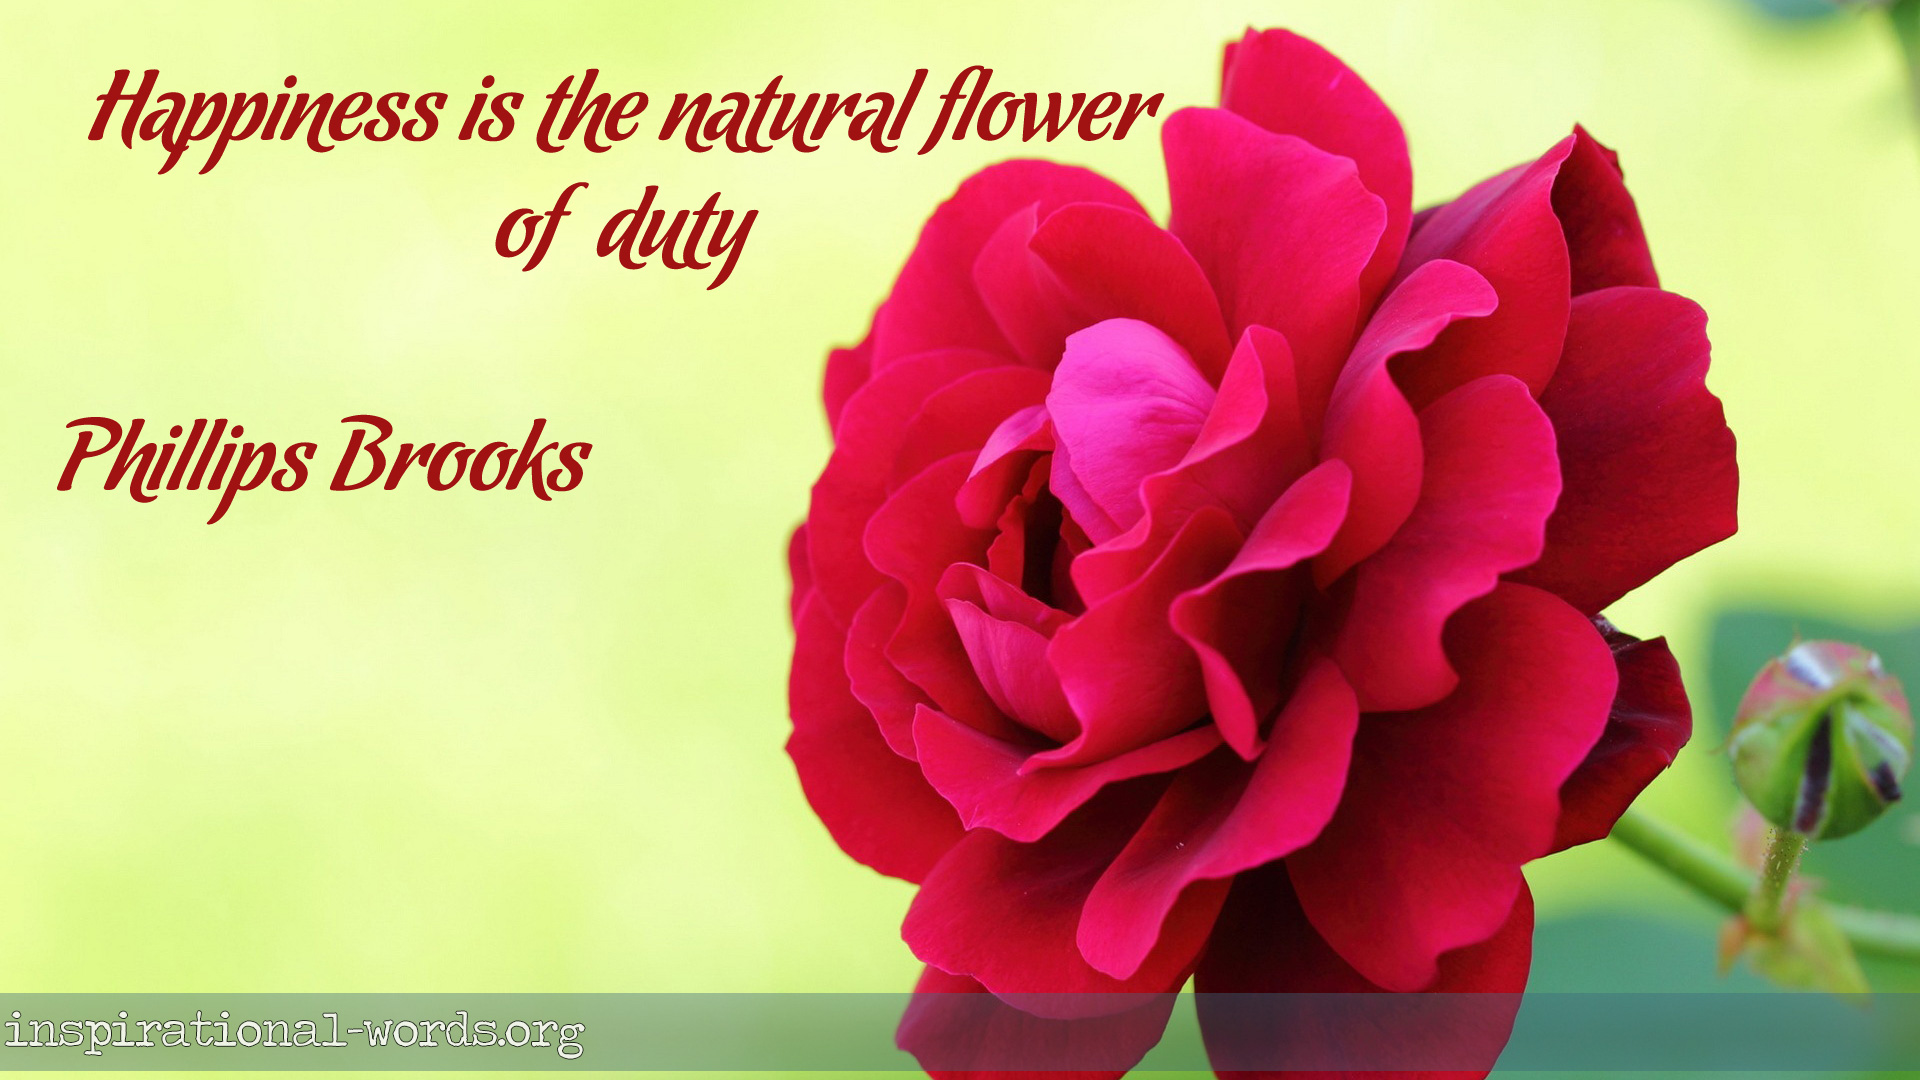 Inspirational Wallpaper Quote by Phillips Brooks